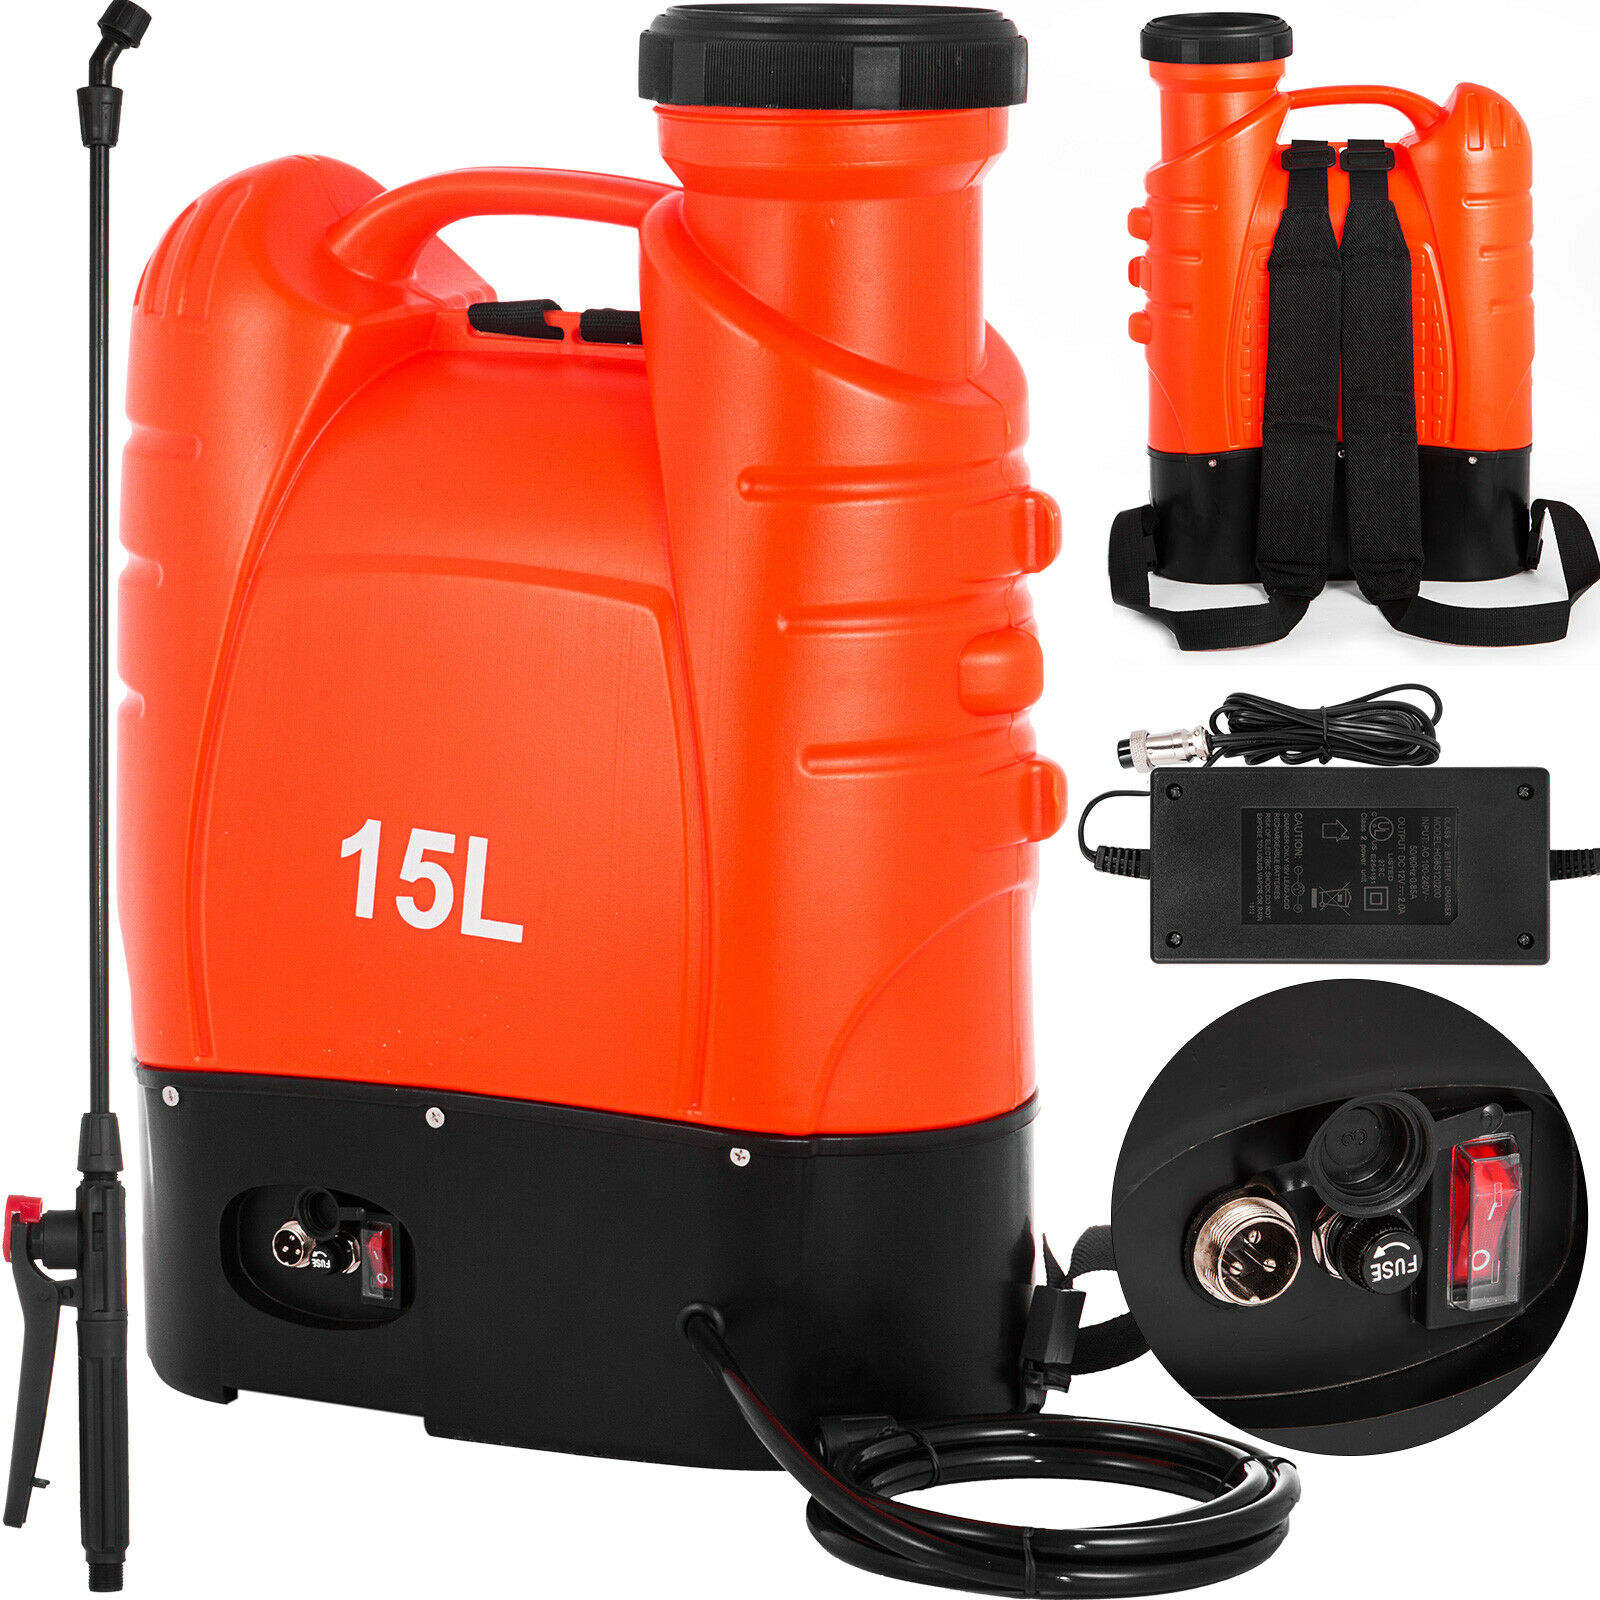 4-Gallon (15L) Battery Powered Backpack Pesticide/Fertilizer Sprayer for Garden Lawn